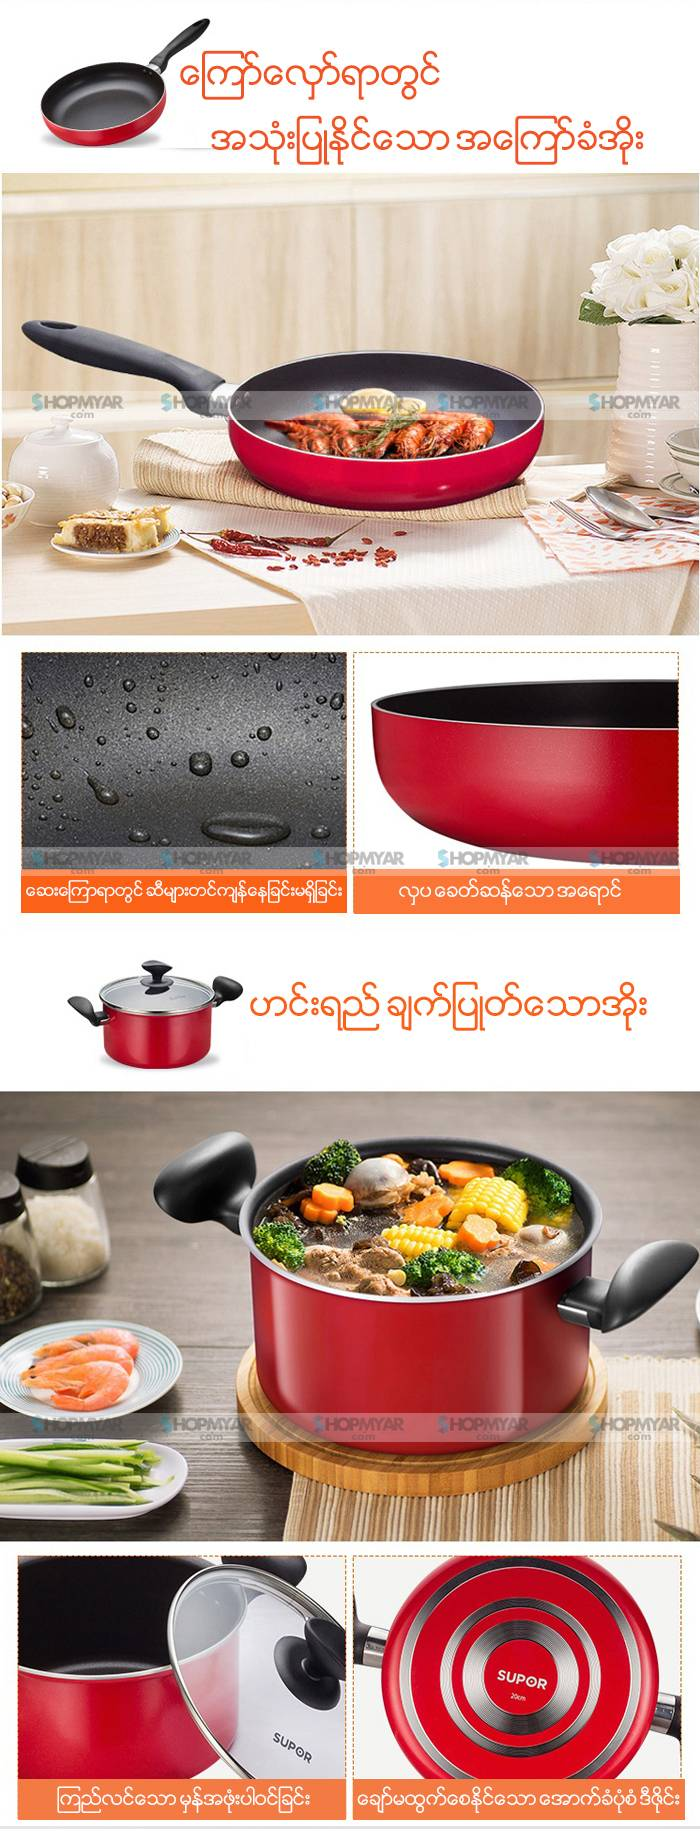 SUPOR Cookware Nonstick Stainless Steel 3 Piece  Pot Set  (TP1501E)